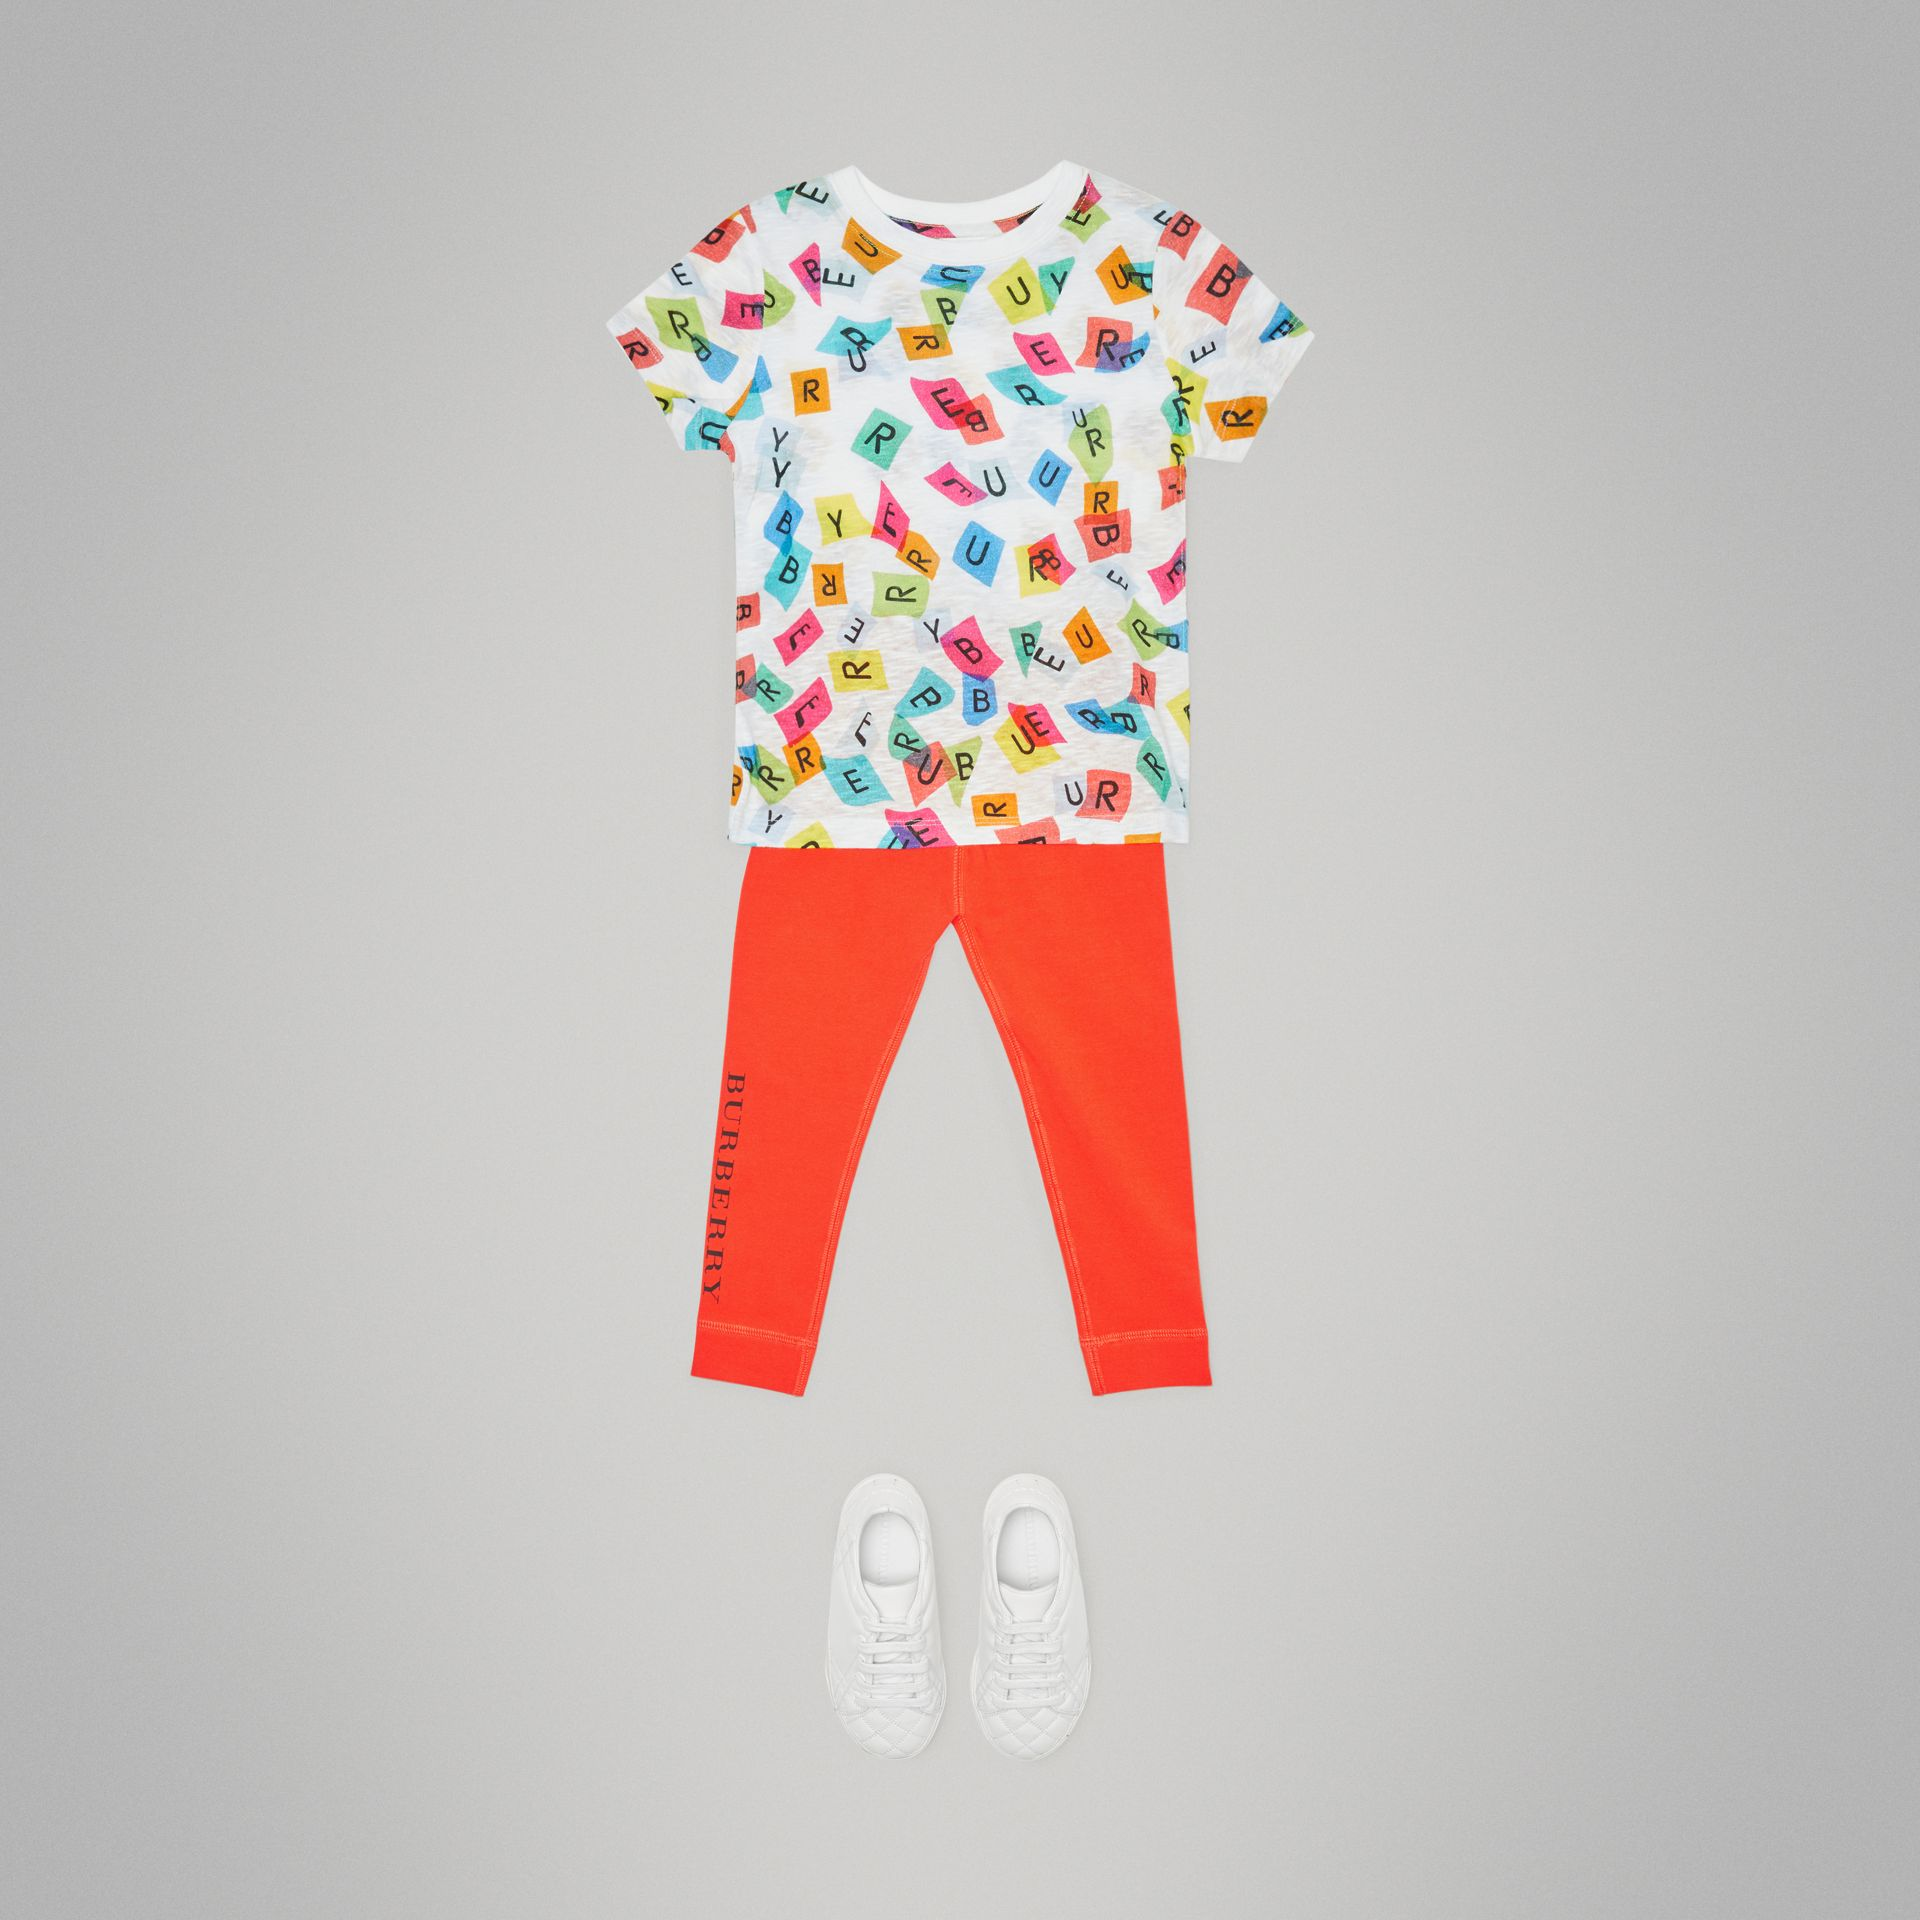 Confetti Letter Print Cotton T-shirt in White | Burberry - gallery image 2